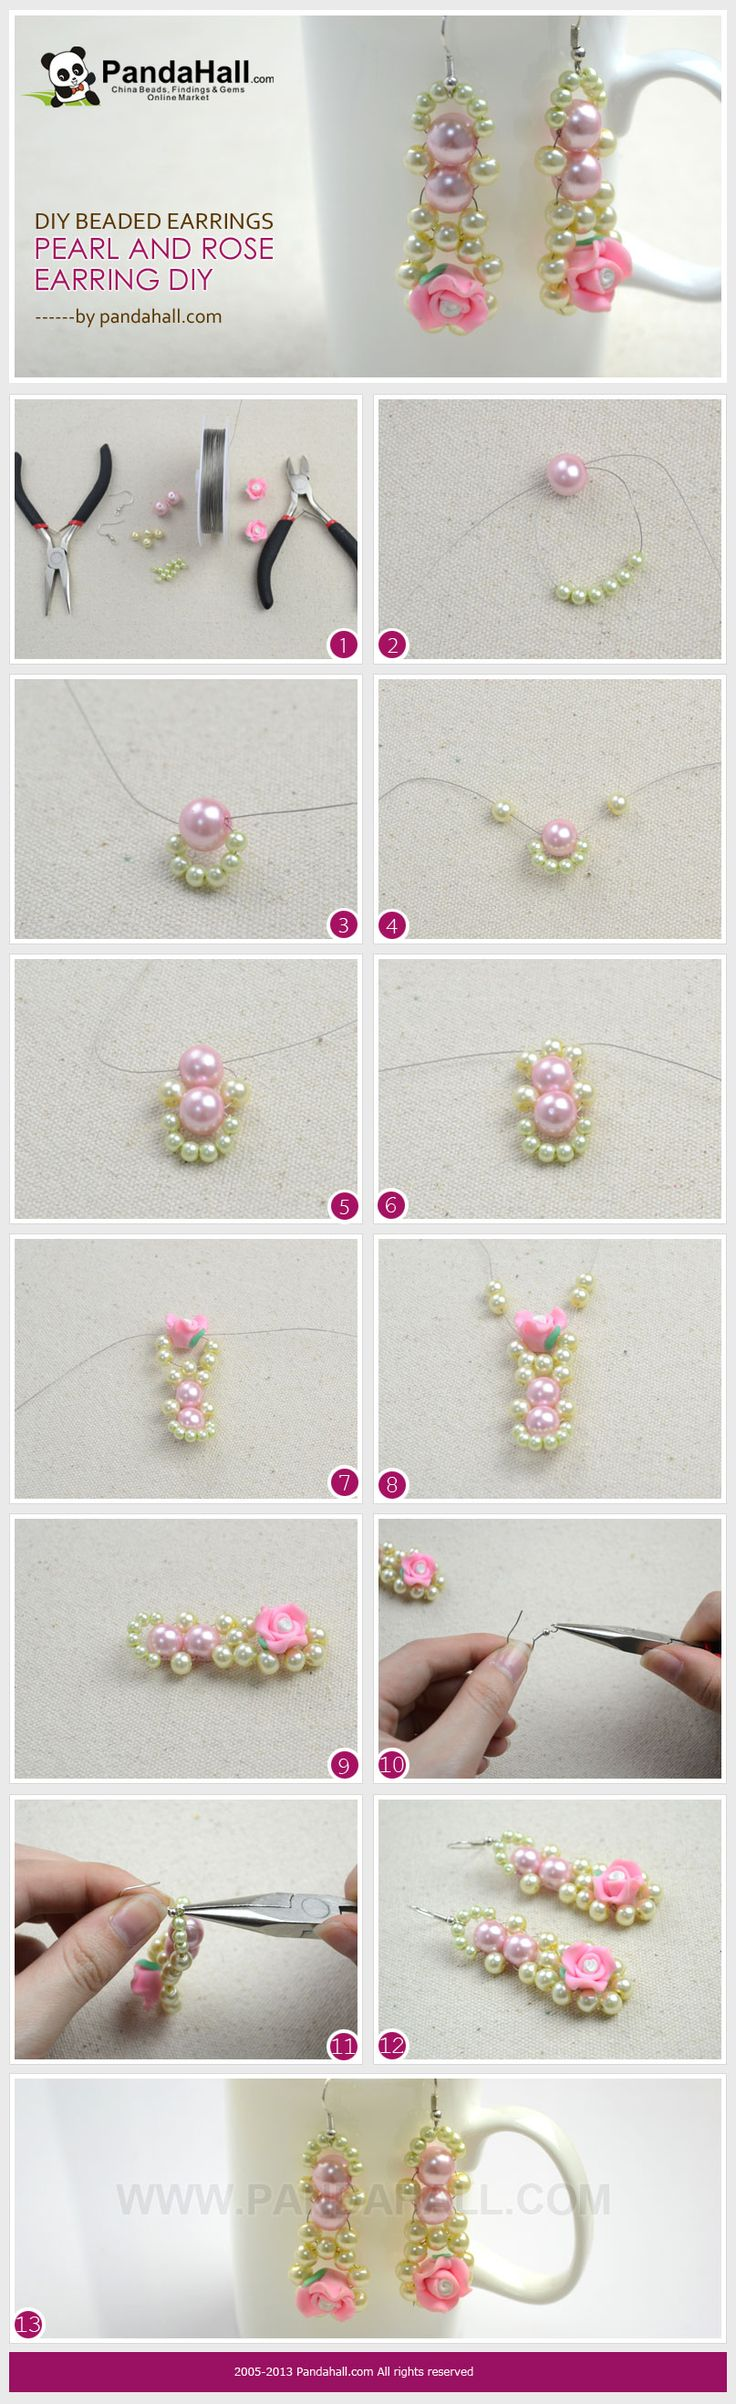 These DIY beaded earrings will demonstrate you an easy way regarding pearl and rose combined earring DIY. Within five minutes, you will create this beautiful pair.